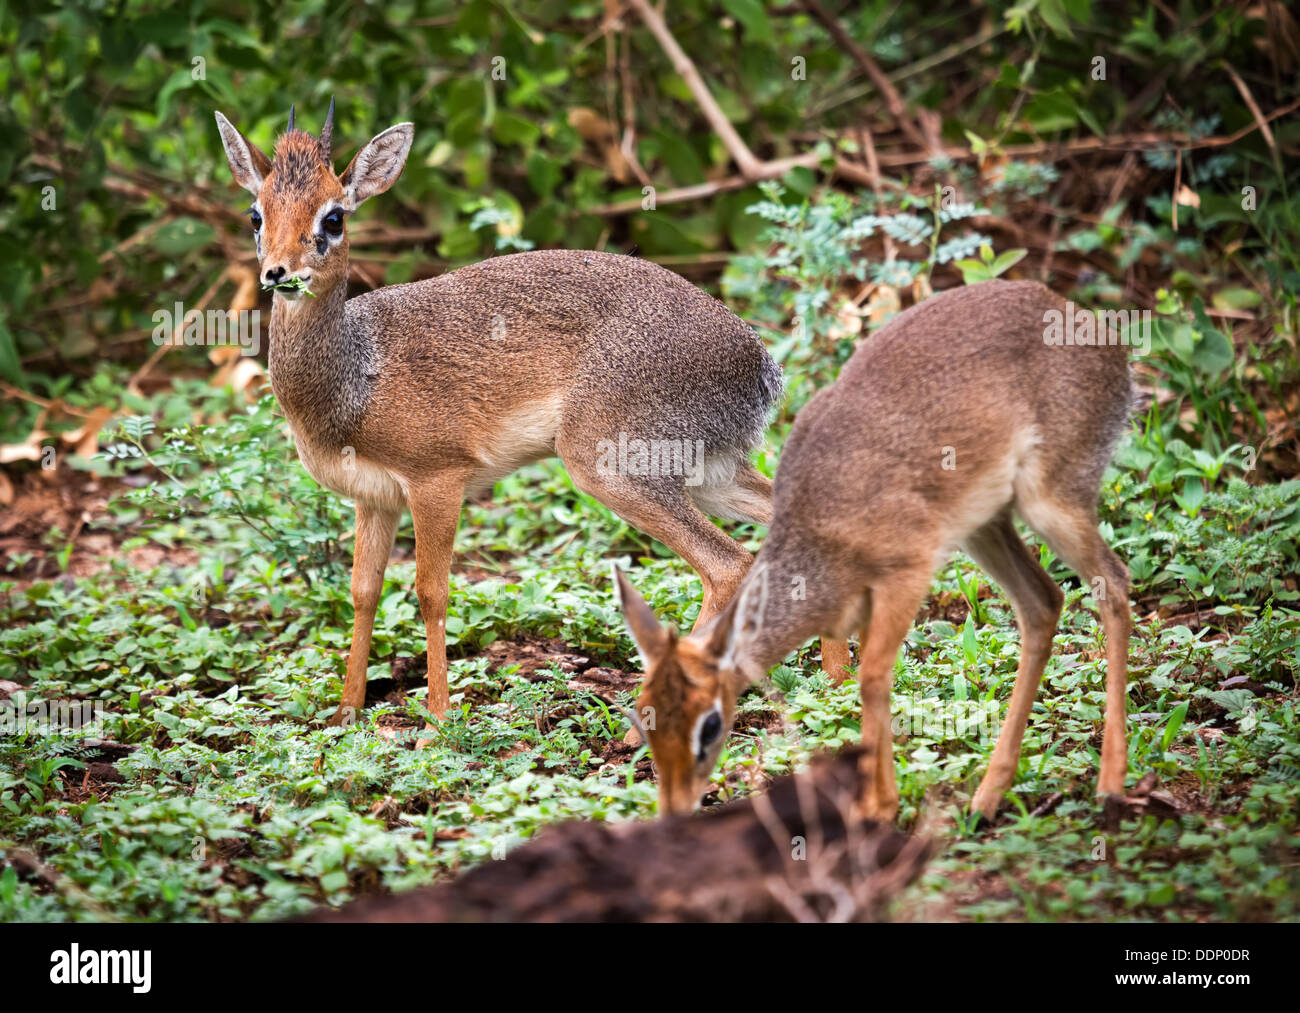 A couple of dik-dik antelopes, in Africa. Lake Manyara national park, Tanzania - Stock Image